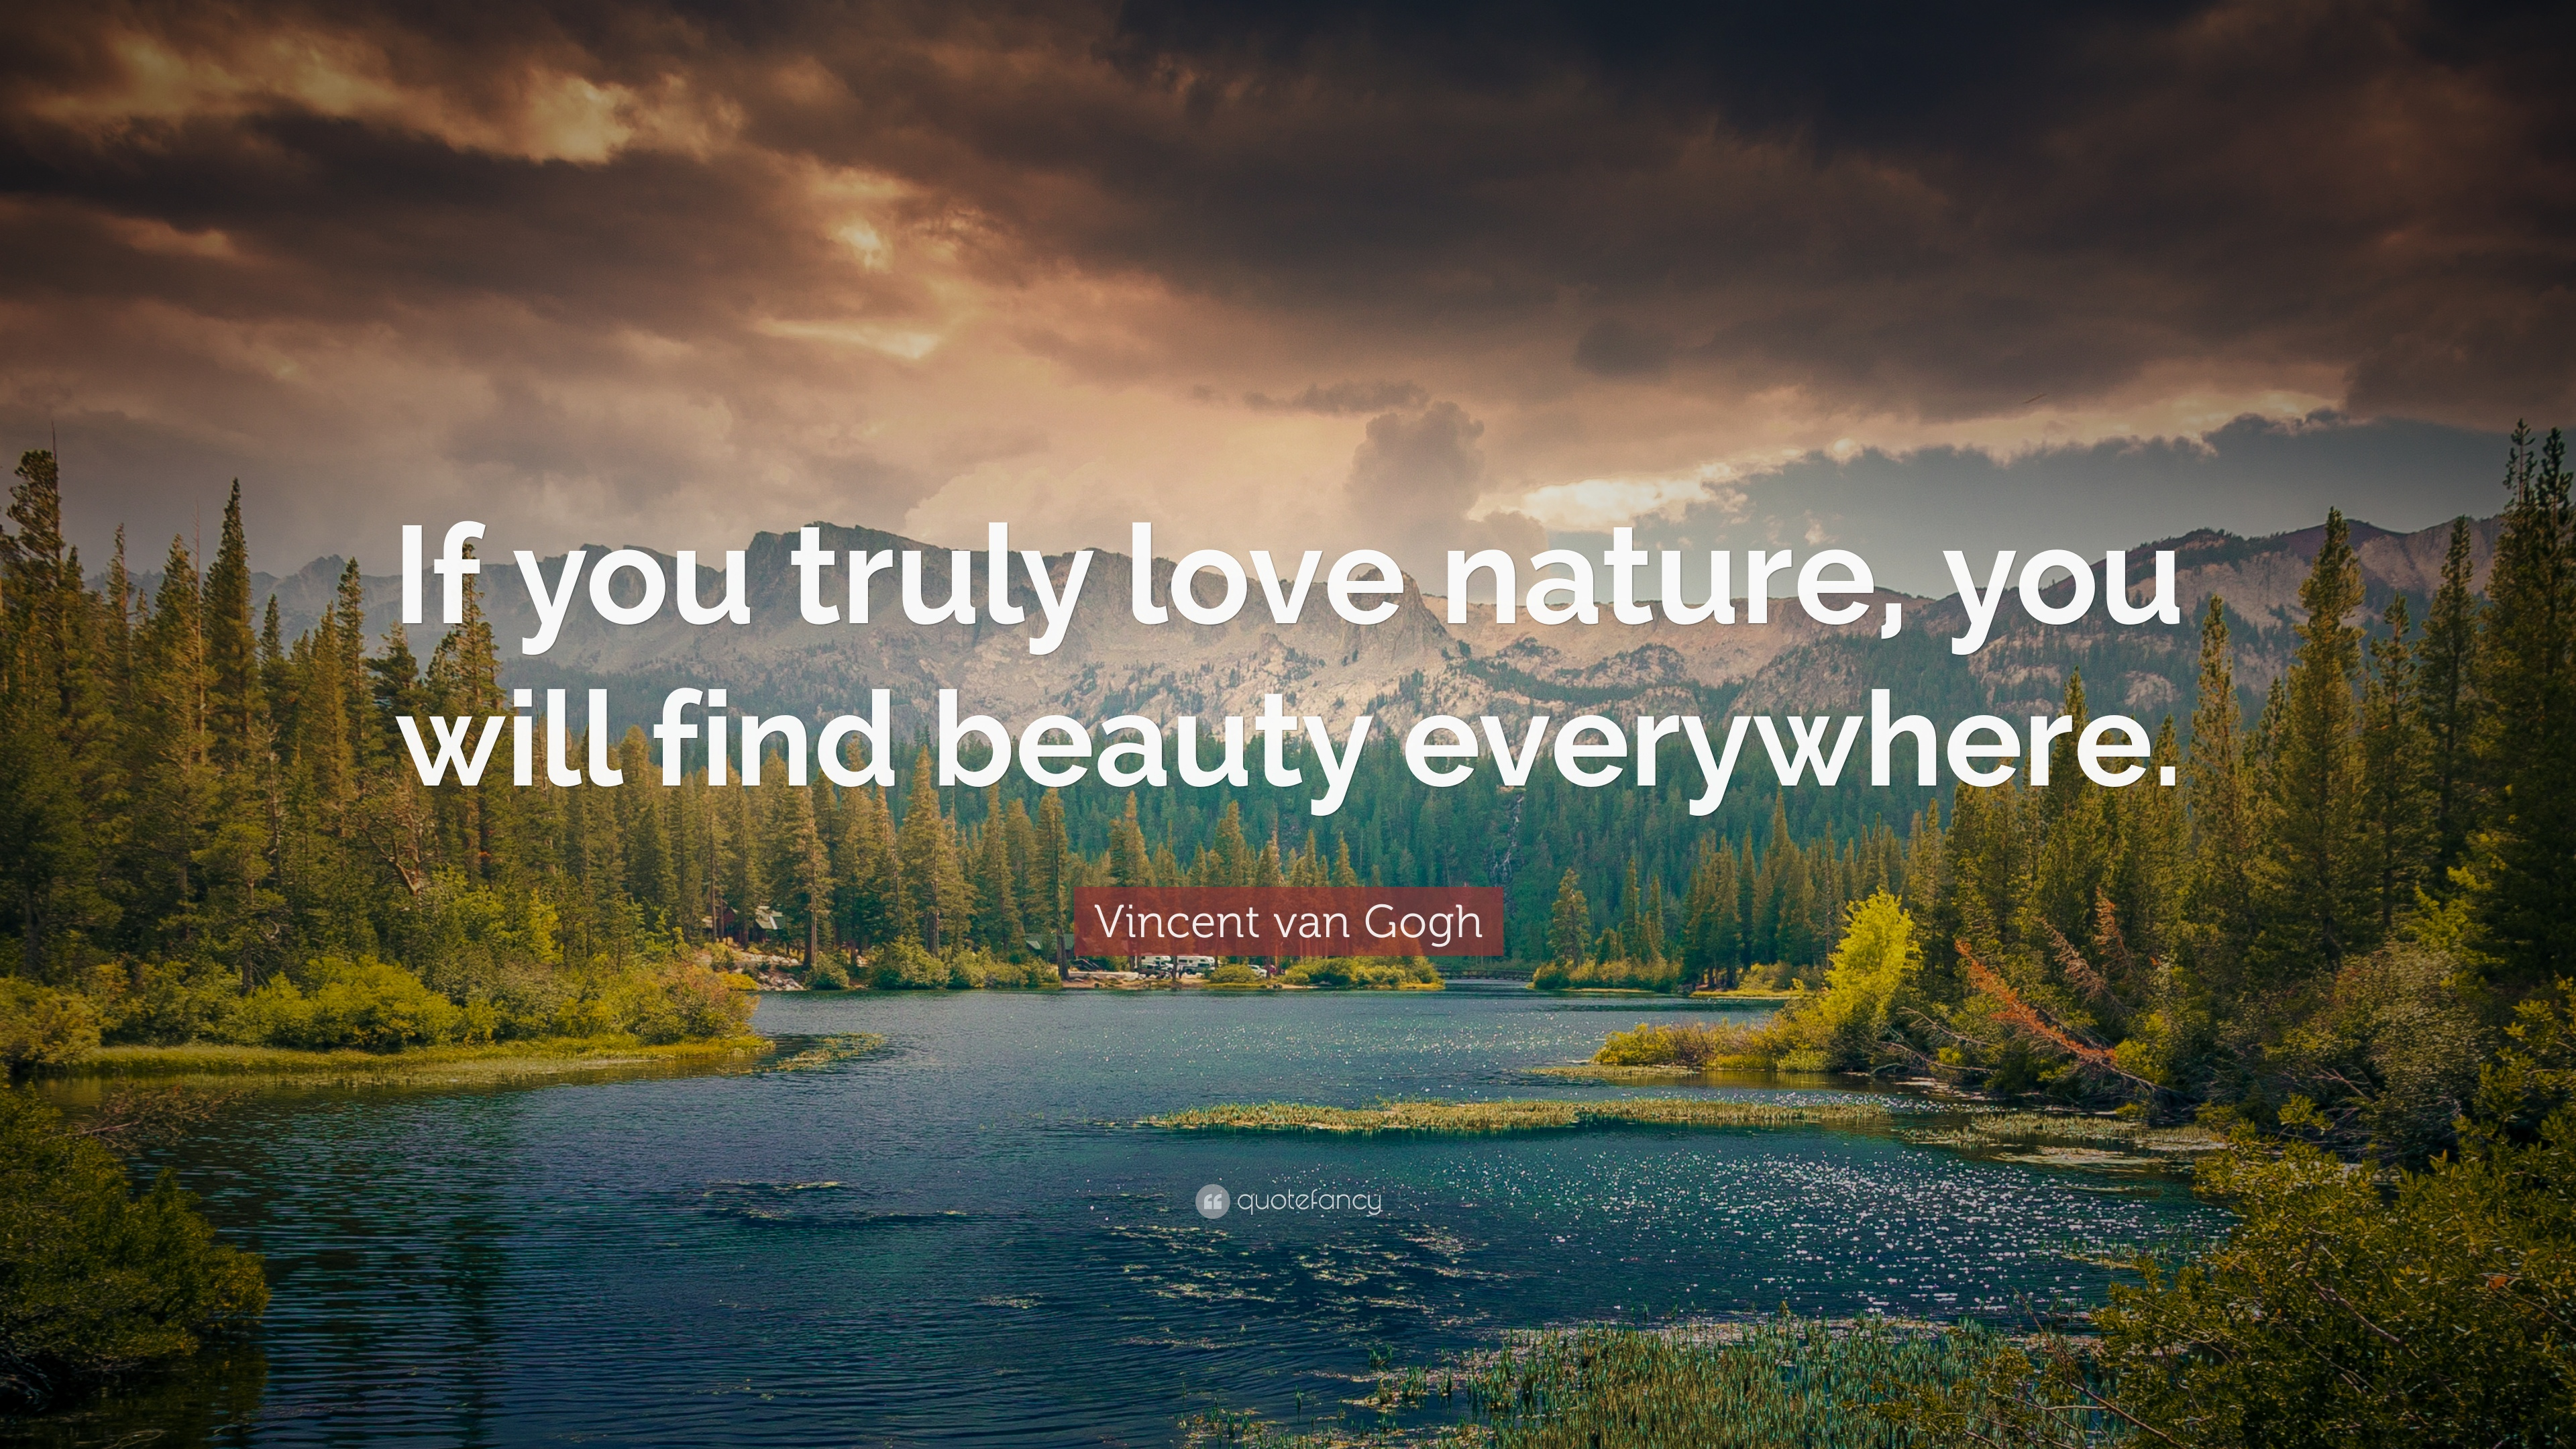 Beautiful Images Of Nature With Quotes In Telugu